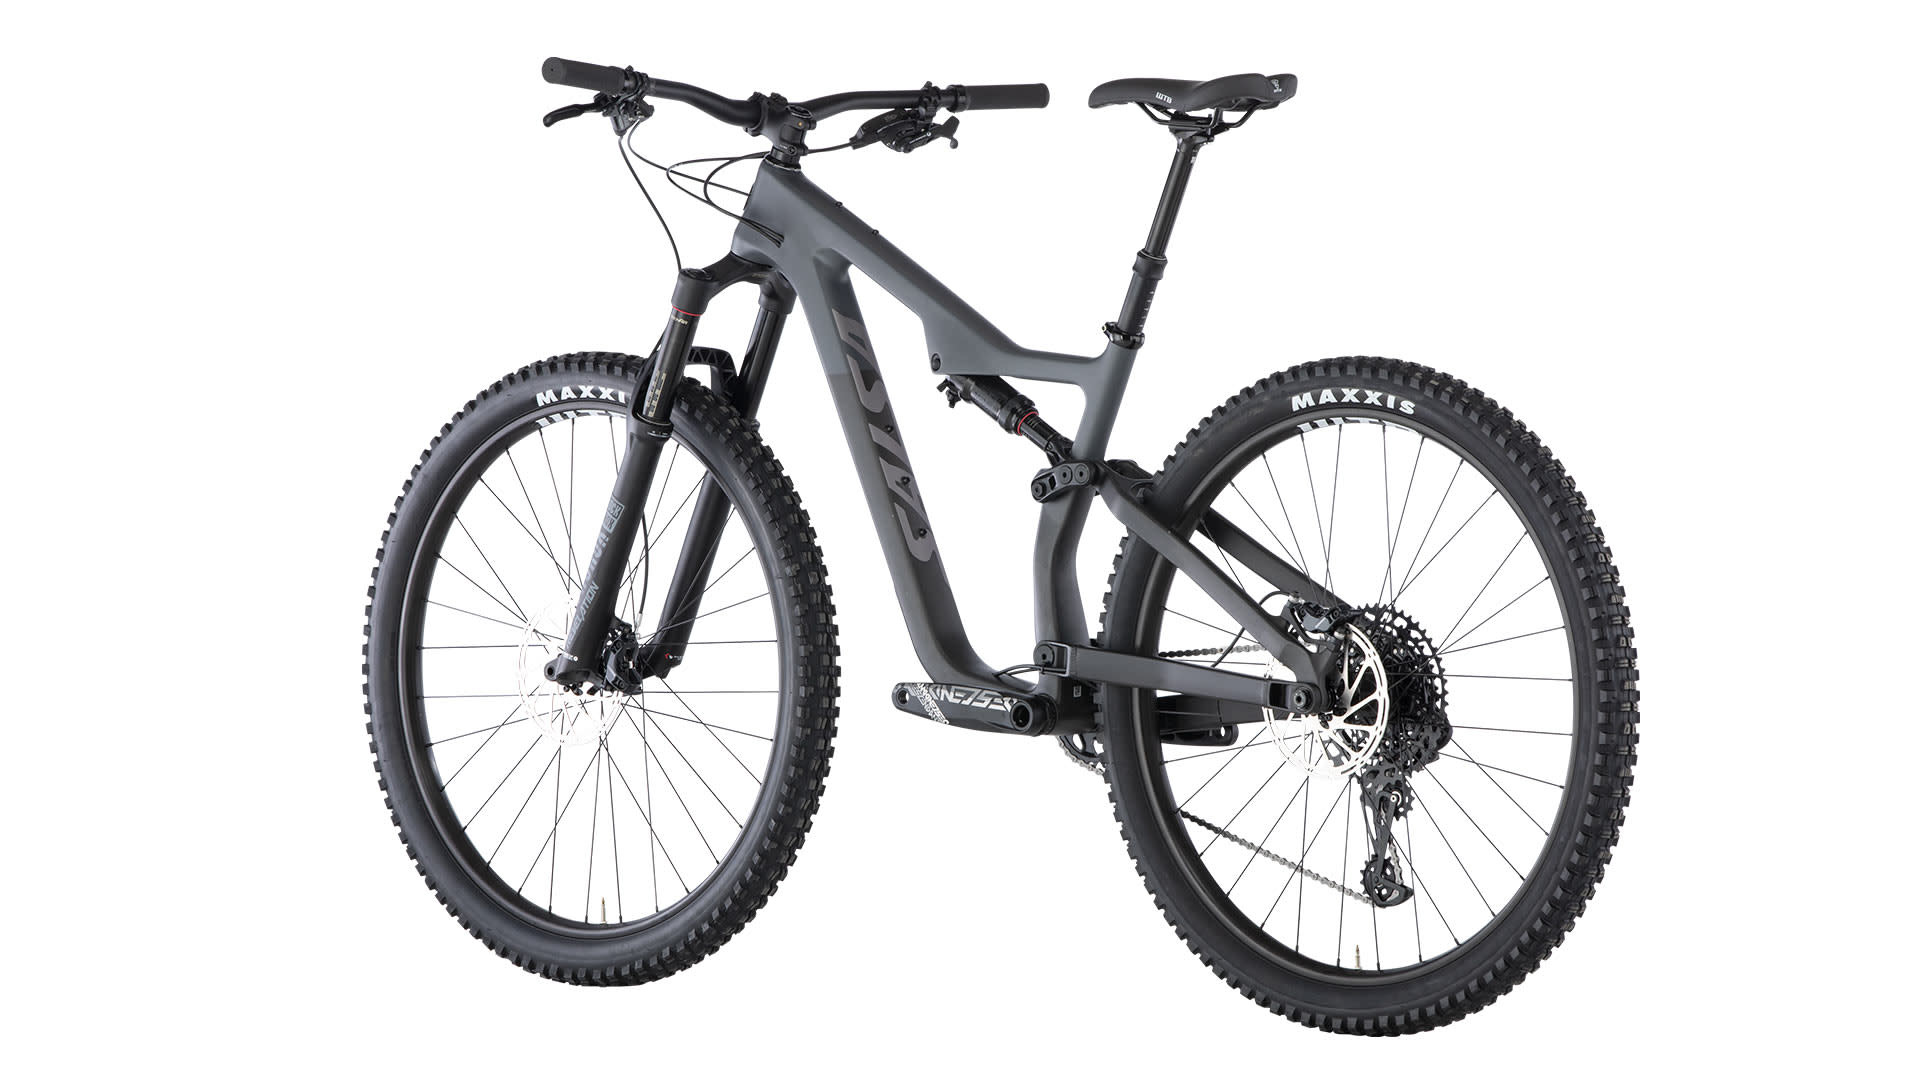 Salsa Salsa Horsethief Carbon NX Eagle Bike Charcoal/Raw Carbon 2019